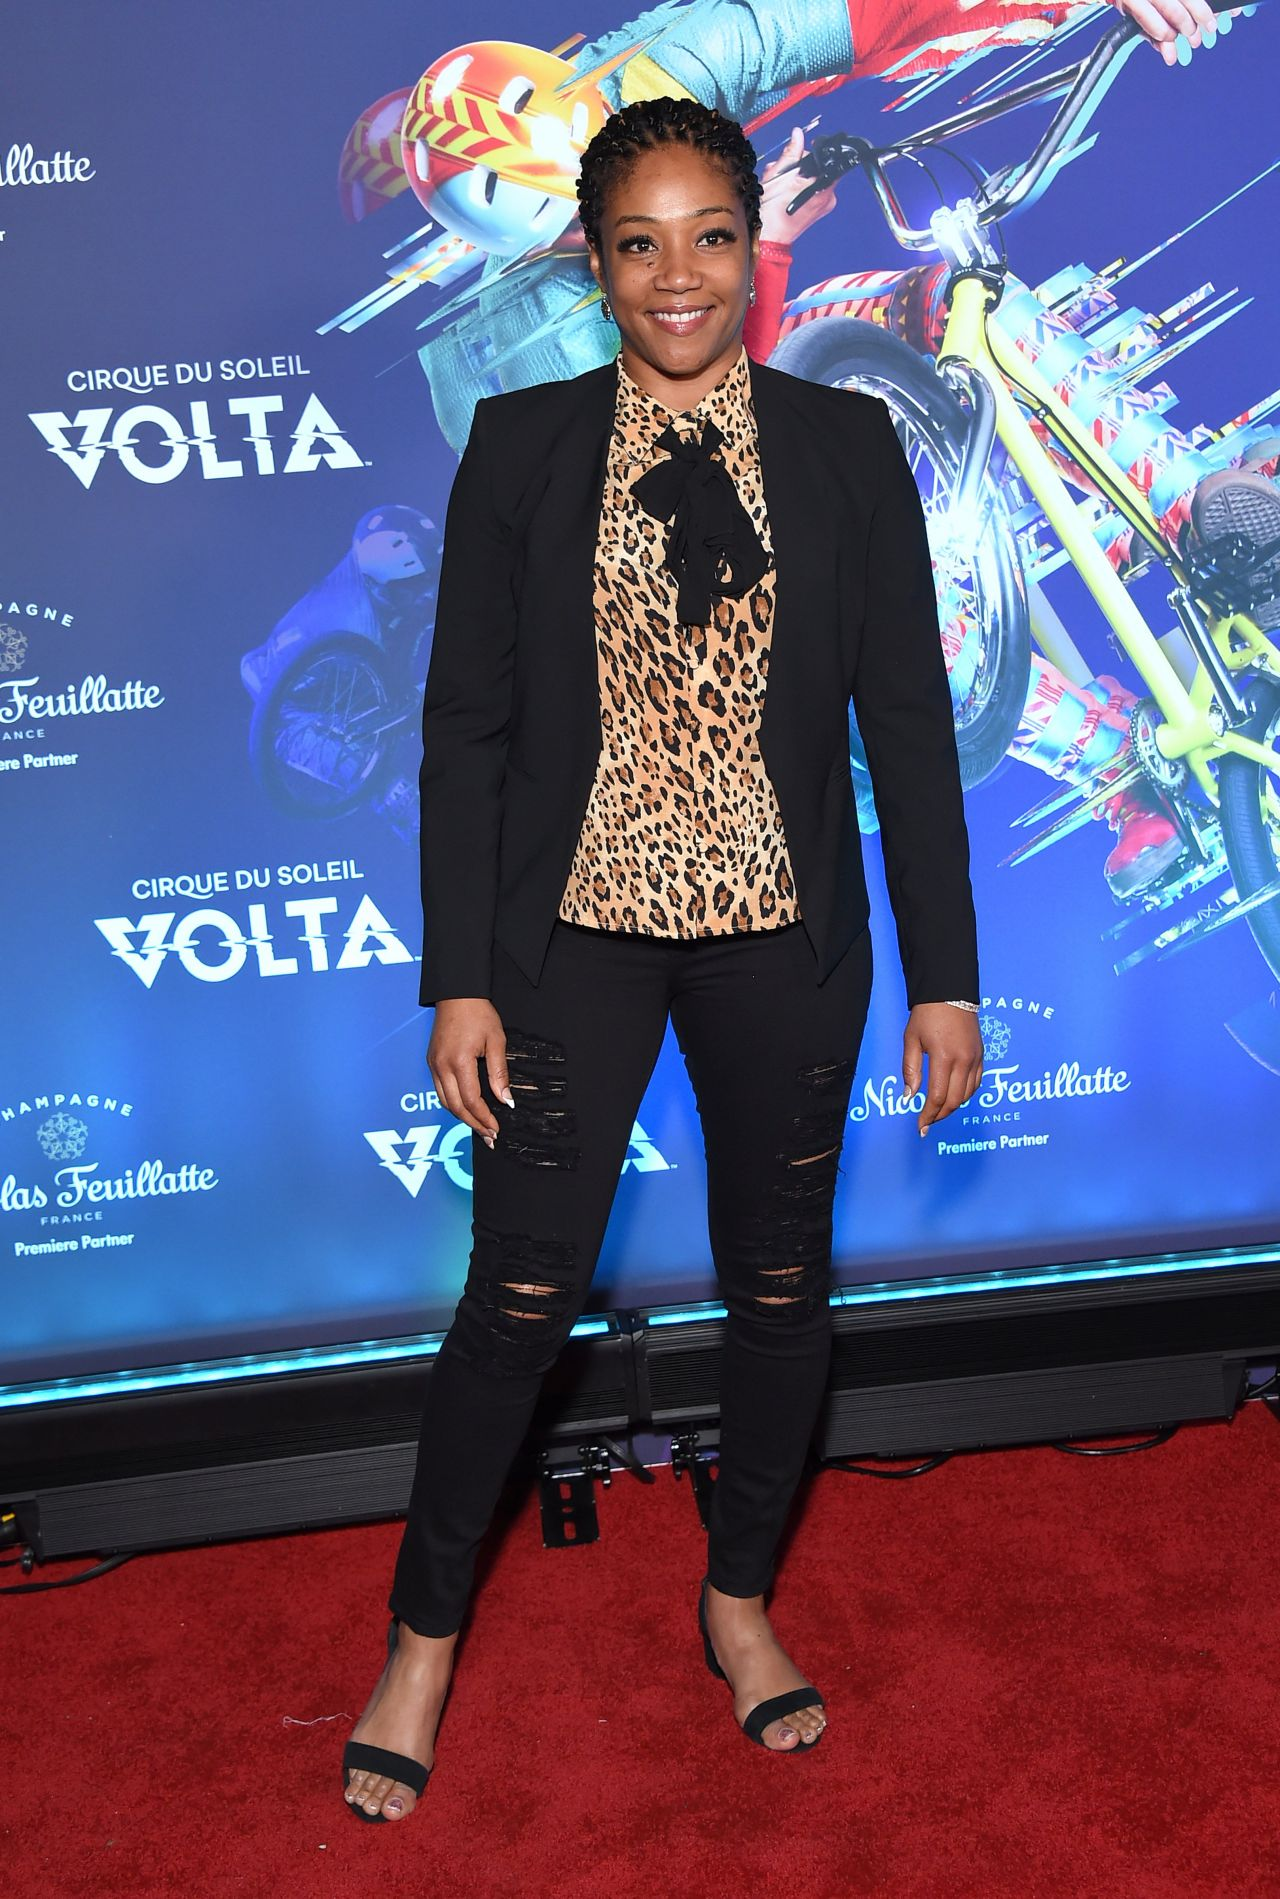 tiffany-haddish-attends-cirque-du-soleil-volta-premiere-in-la